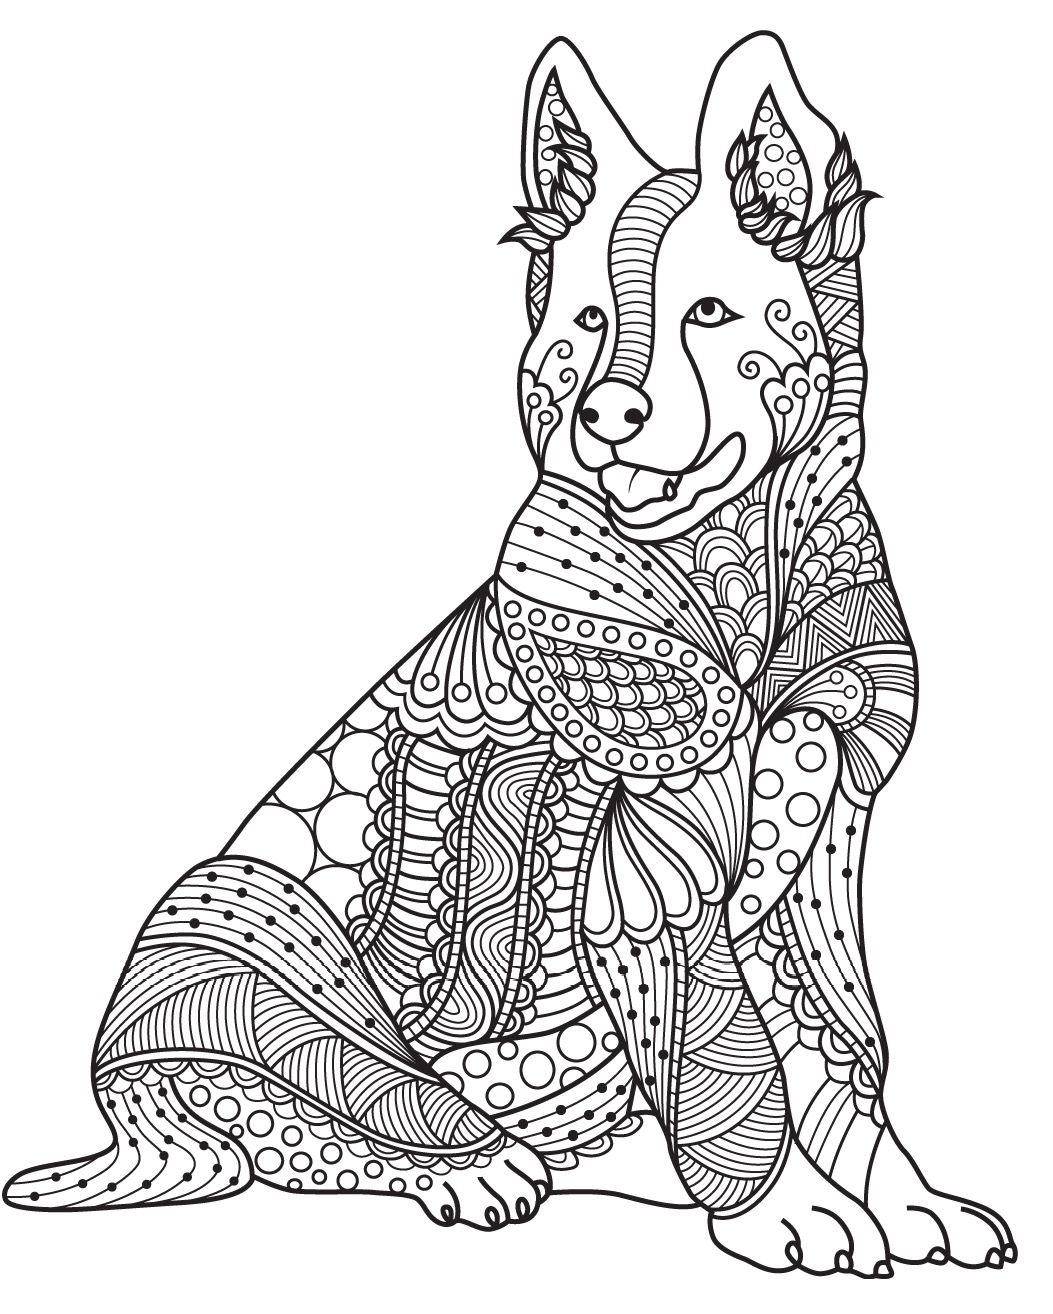 Dog | Colorish: Coloring Book For Adults Mandala Relax By